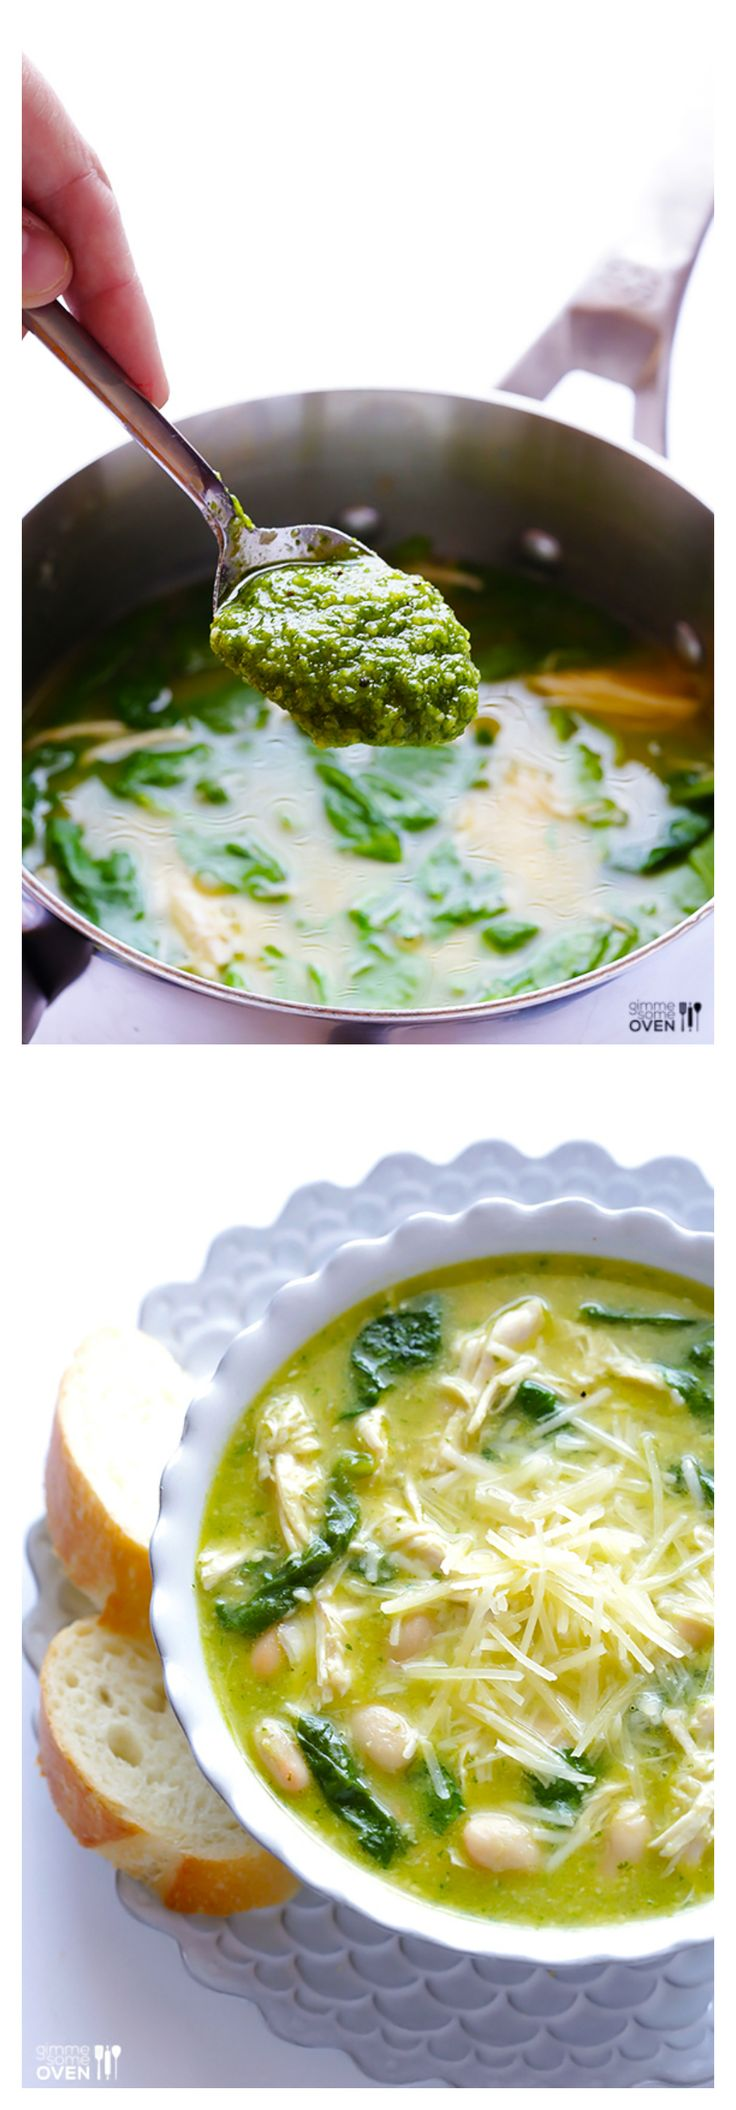 5-Ingredient Pesto Chicken Soup -- simple to make, and full of those fresh pesto flavors we all love! | gimmesomeoven.com #soup #chicken